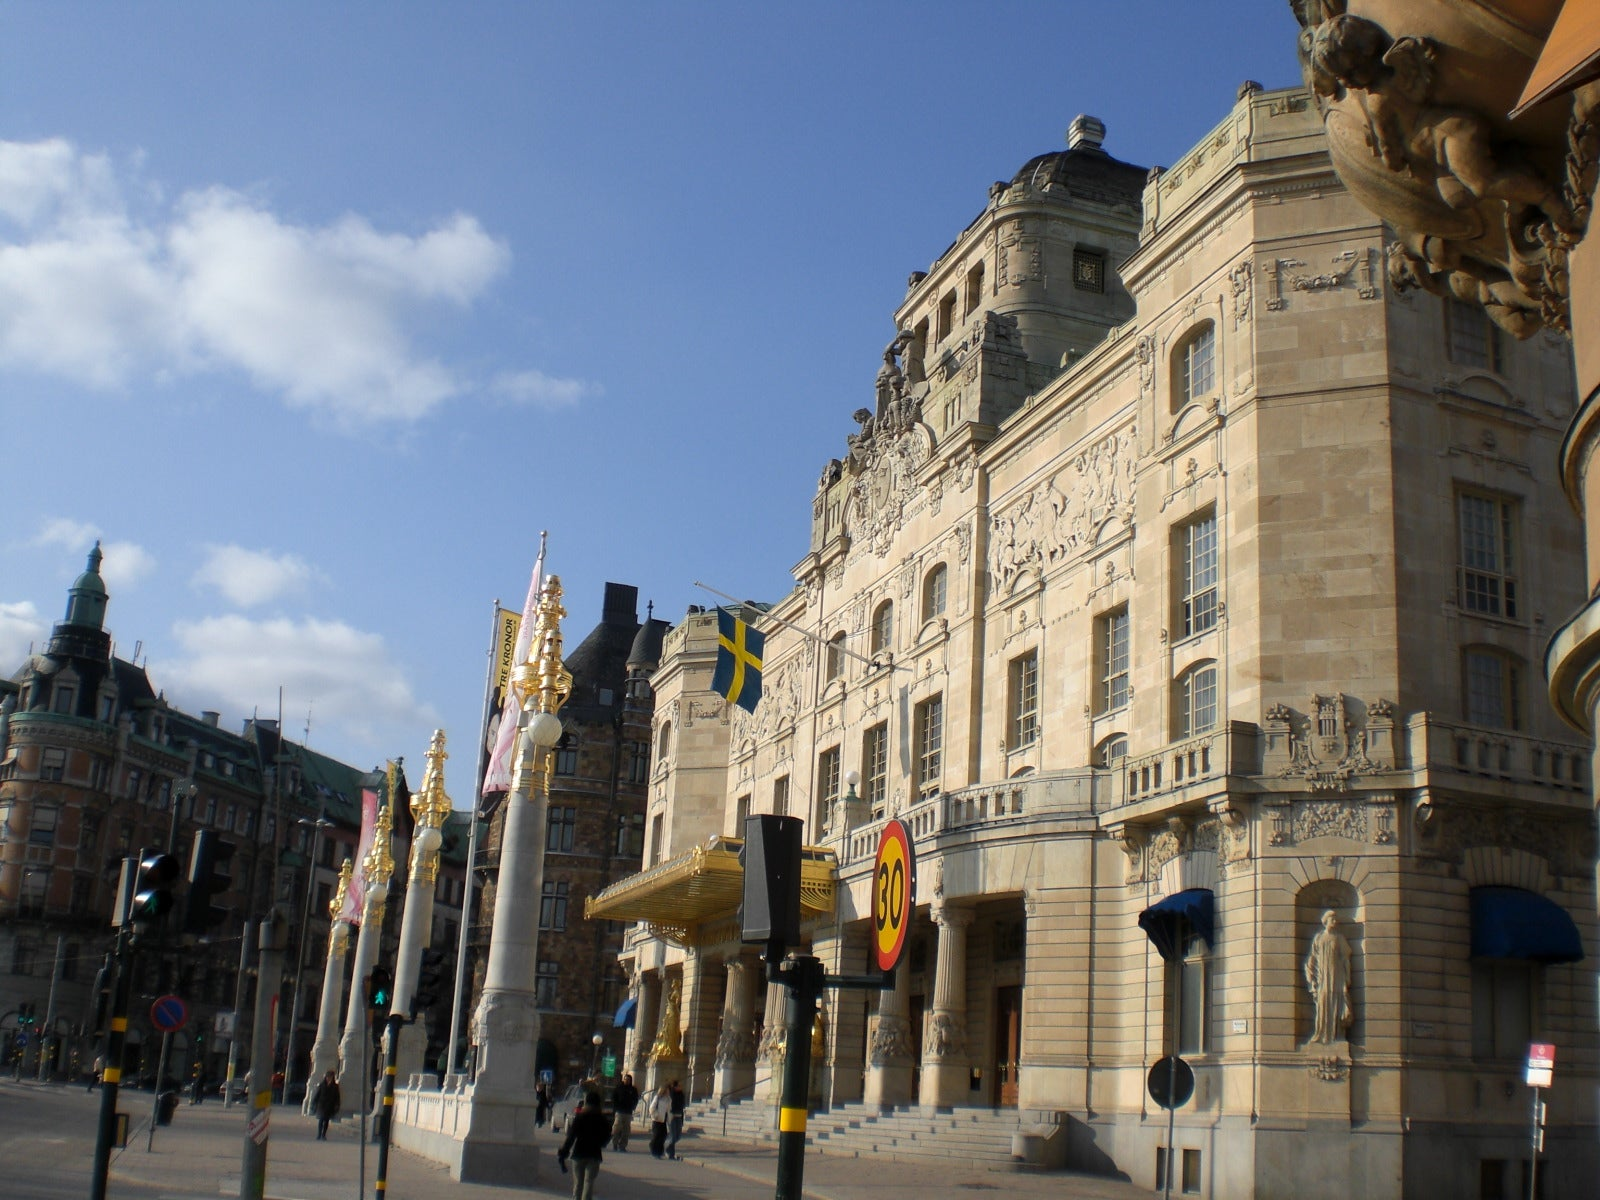 Real Theatre of Dramatic Art in Stockholm